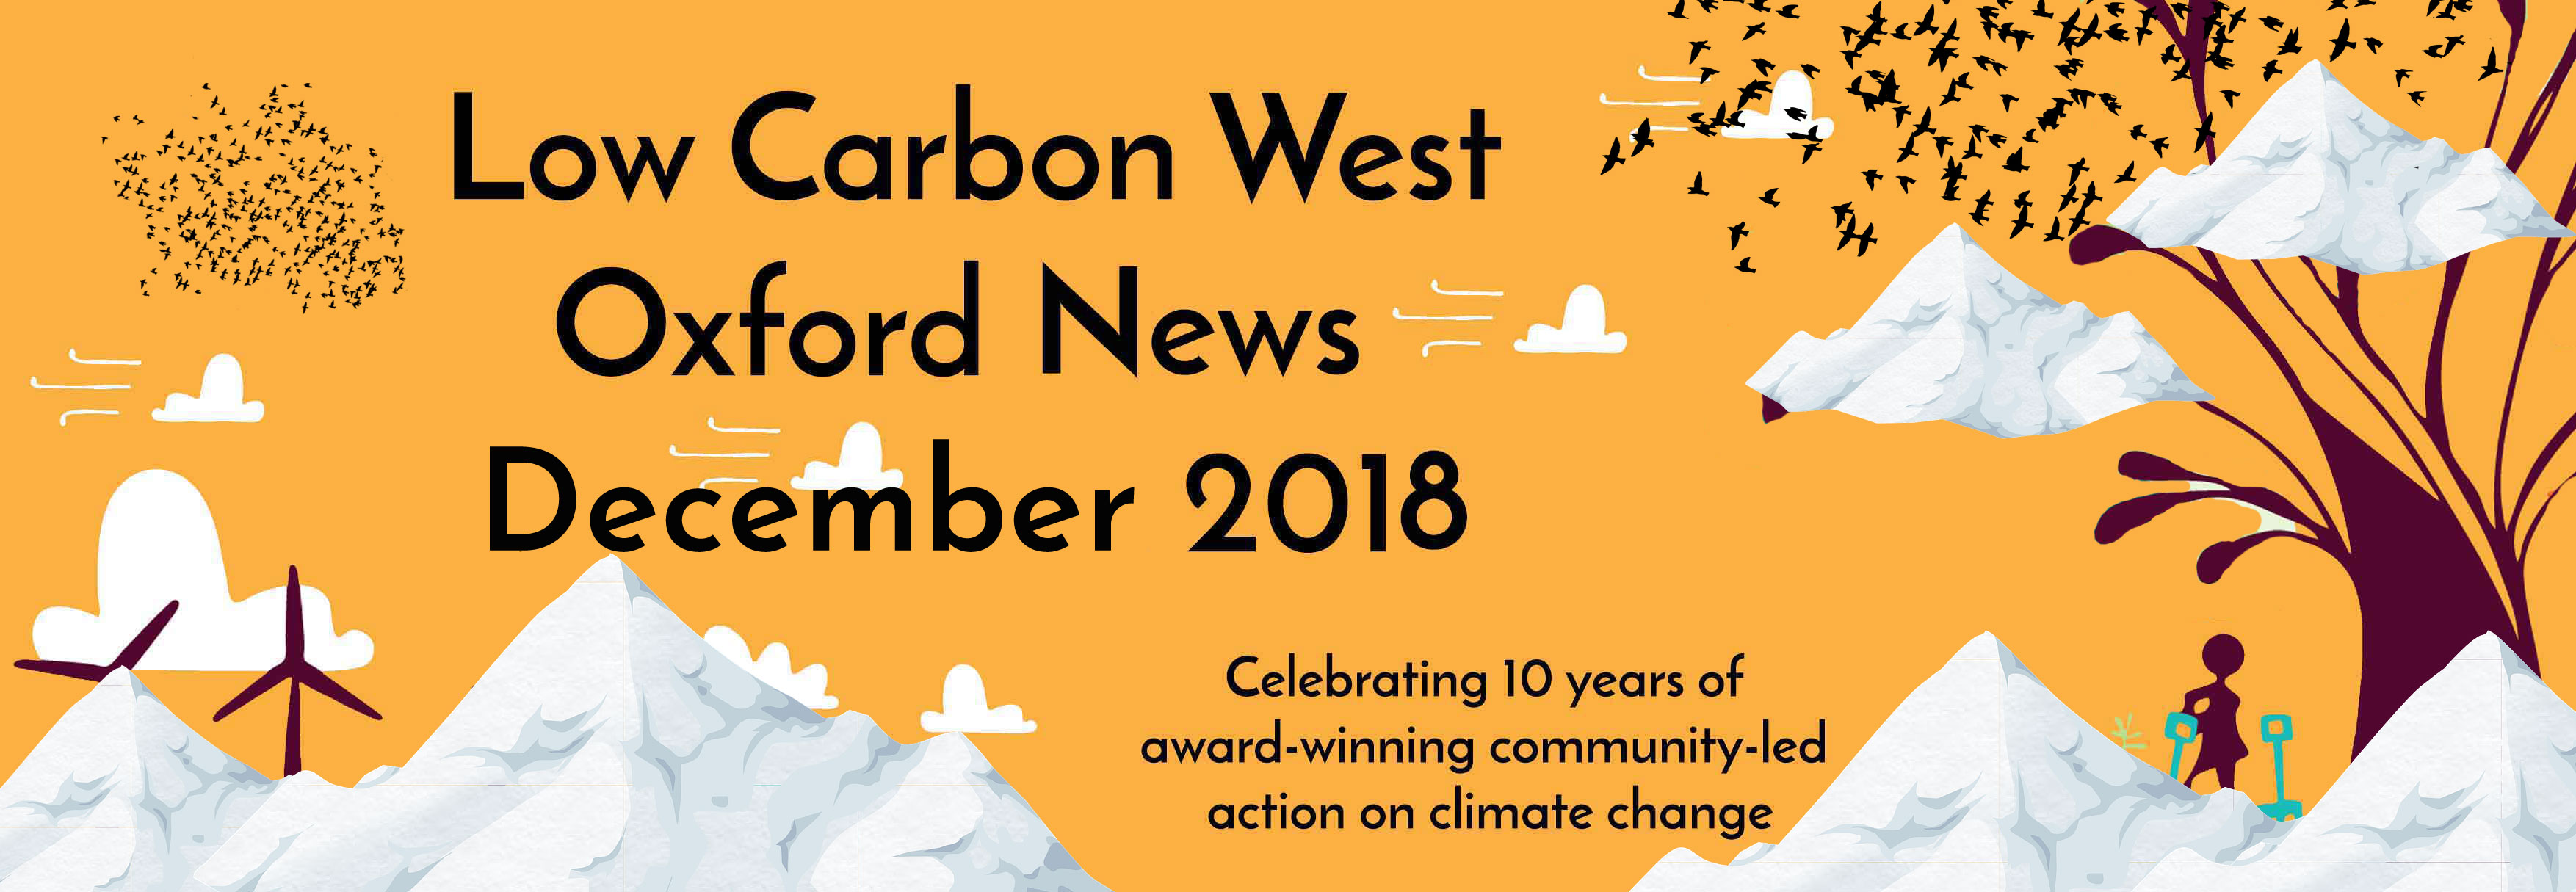 LCWO's December newsletter is here